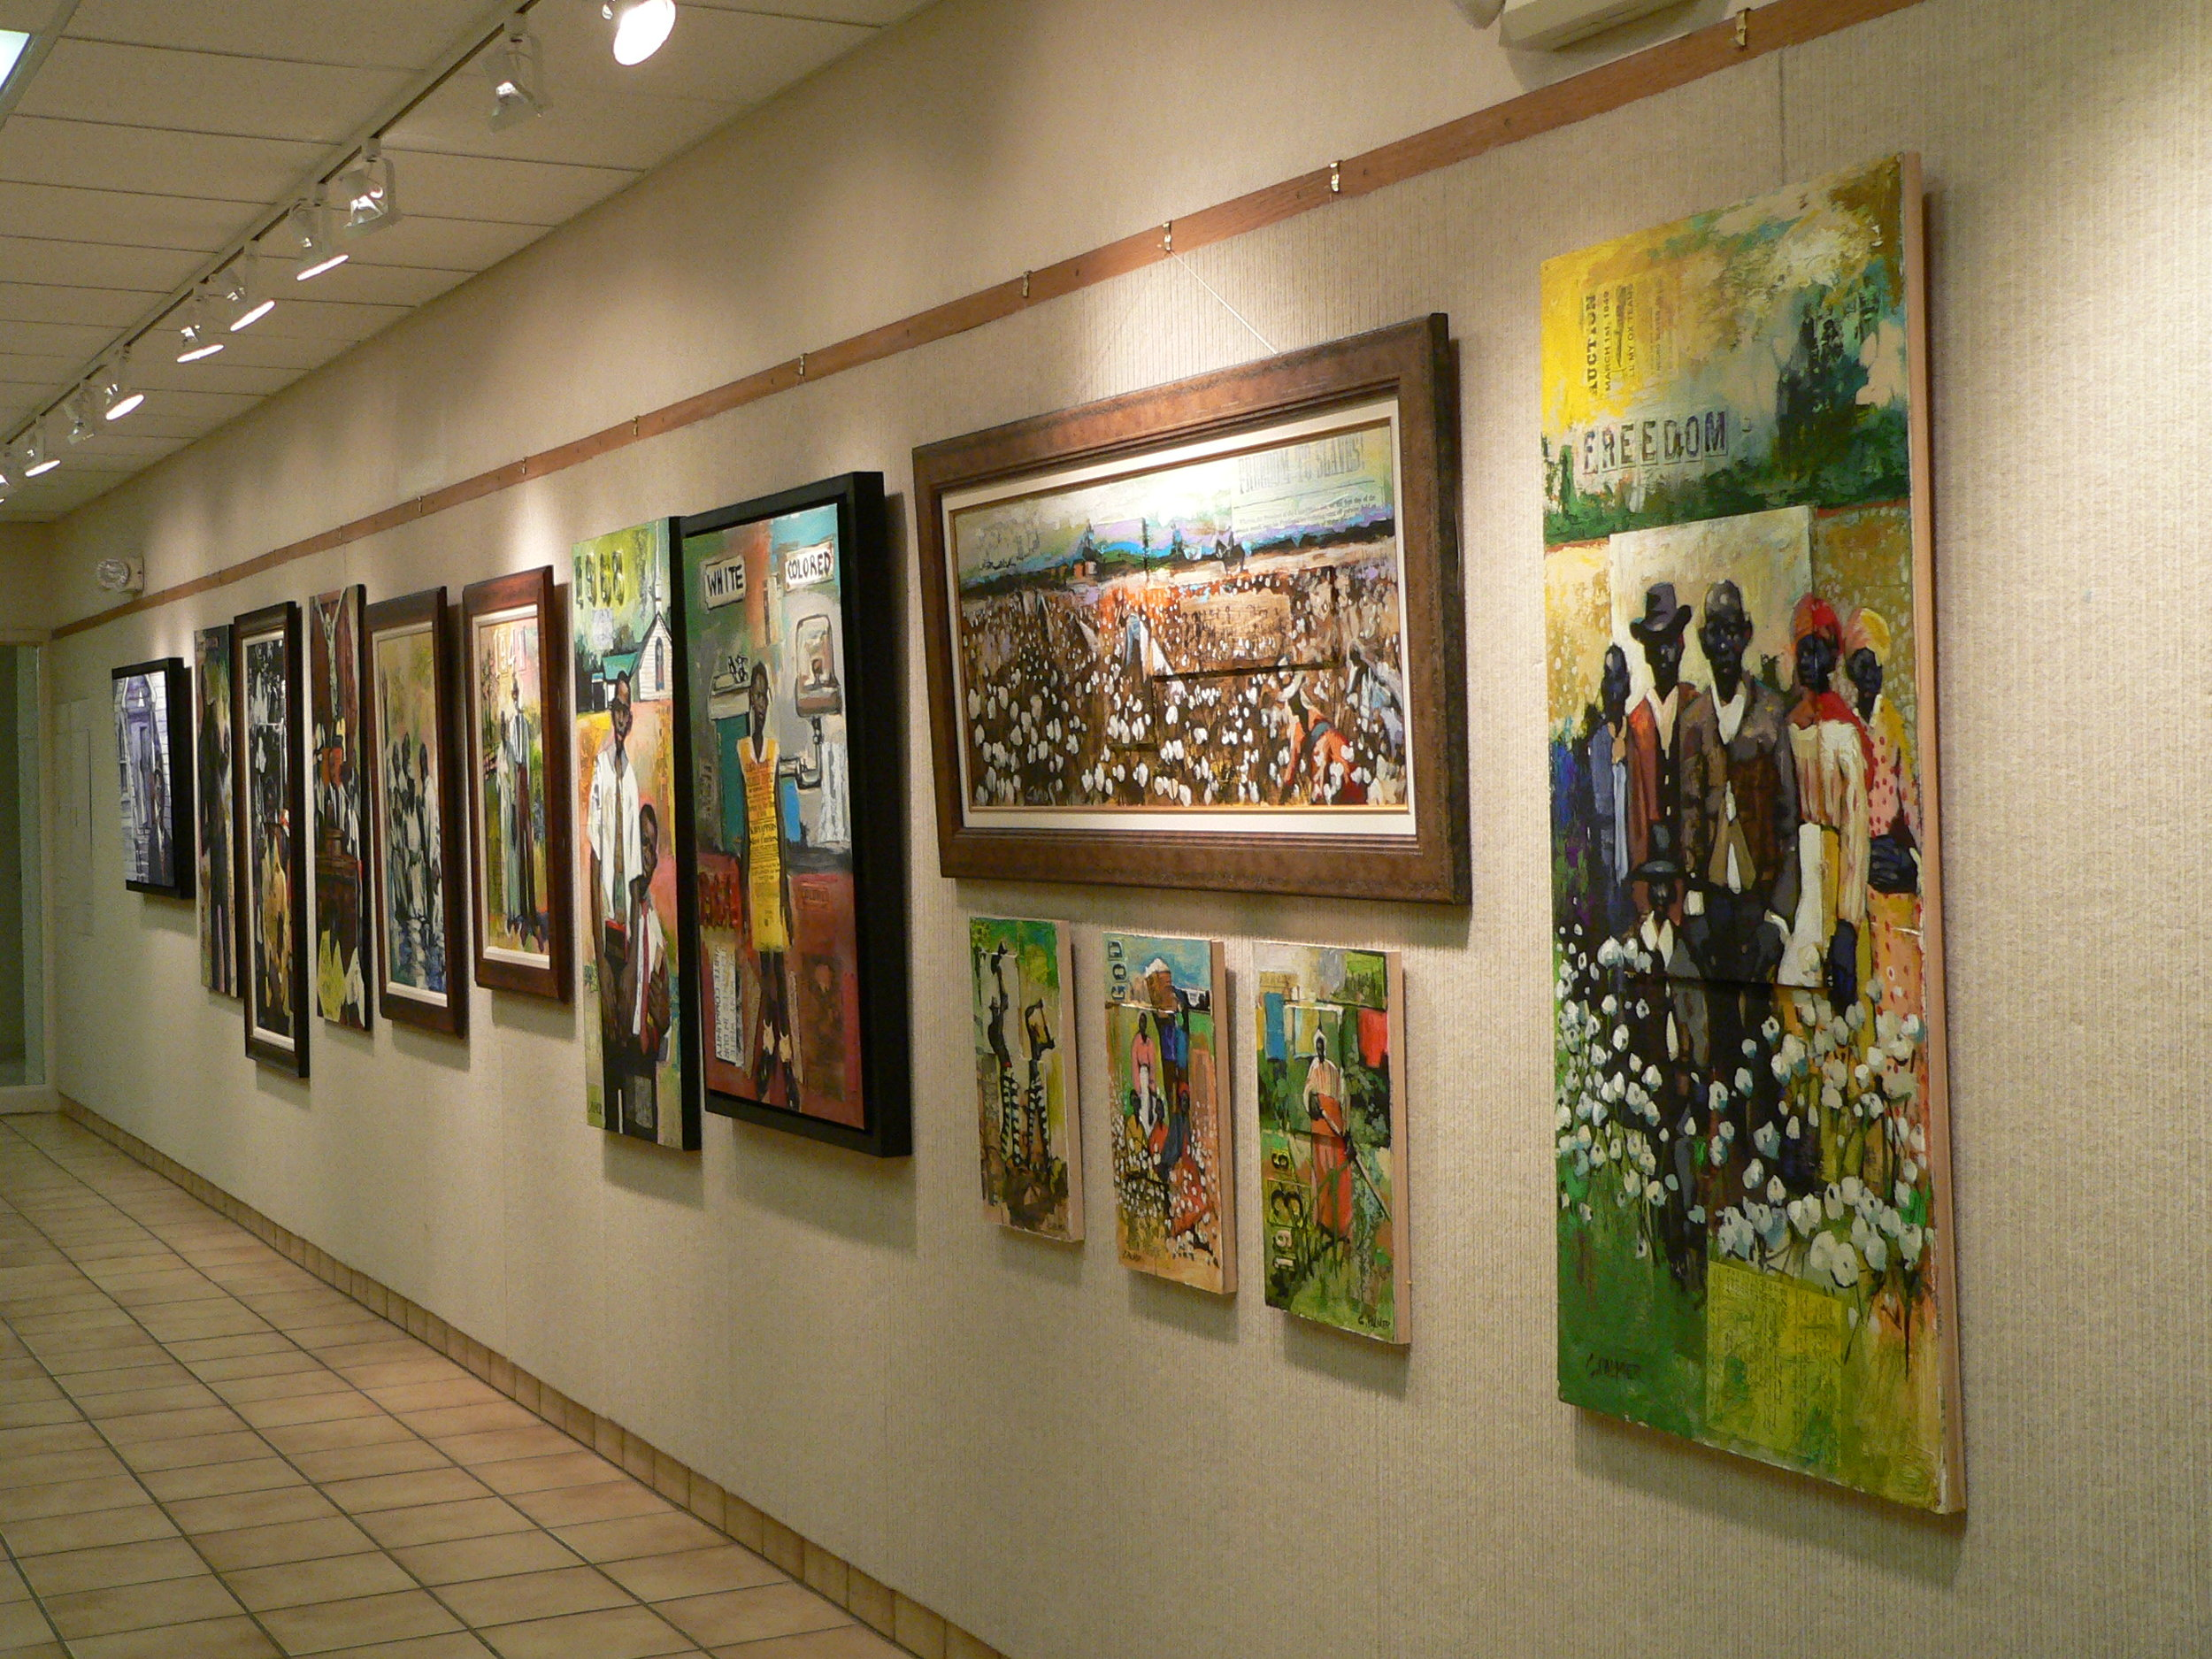 Exhibition at the Gordon Jewish Community Center